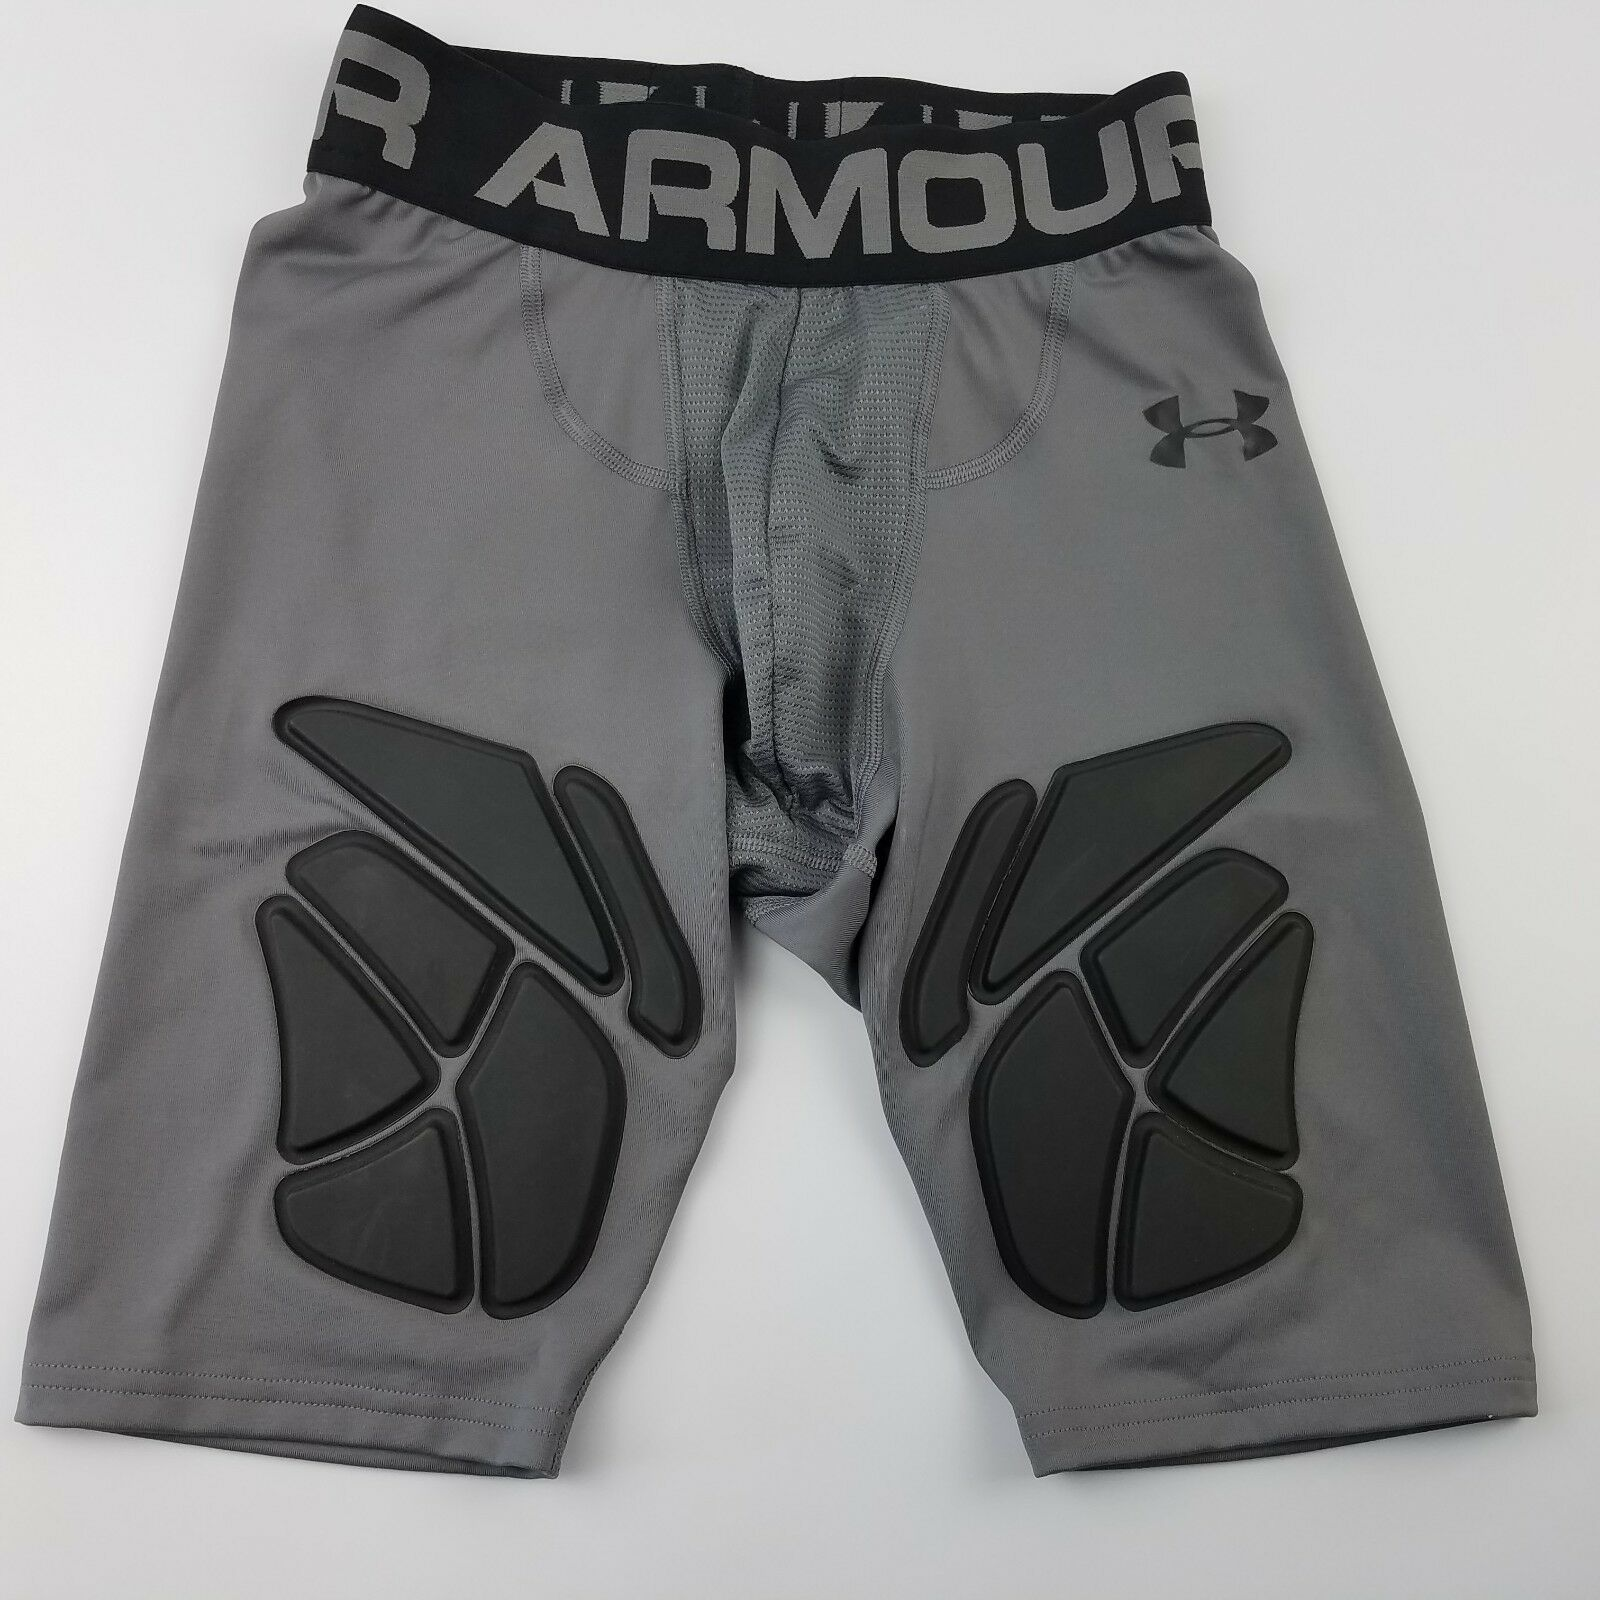 Excelente calidad precios baratass precio al por mayor Under Armour Padded Compression Football Shorts Mens Size Medium ...